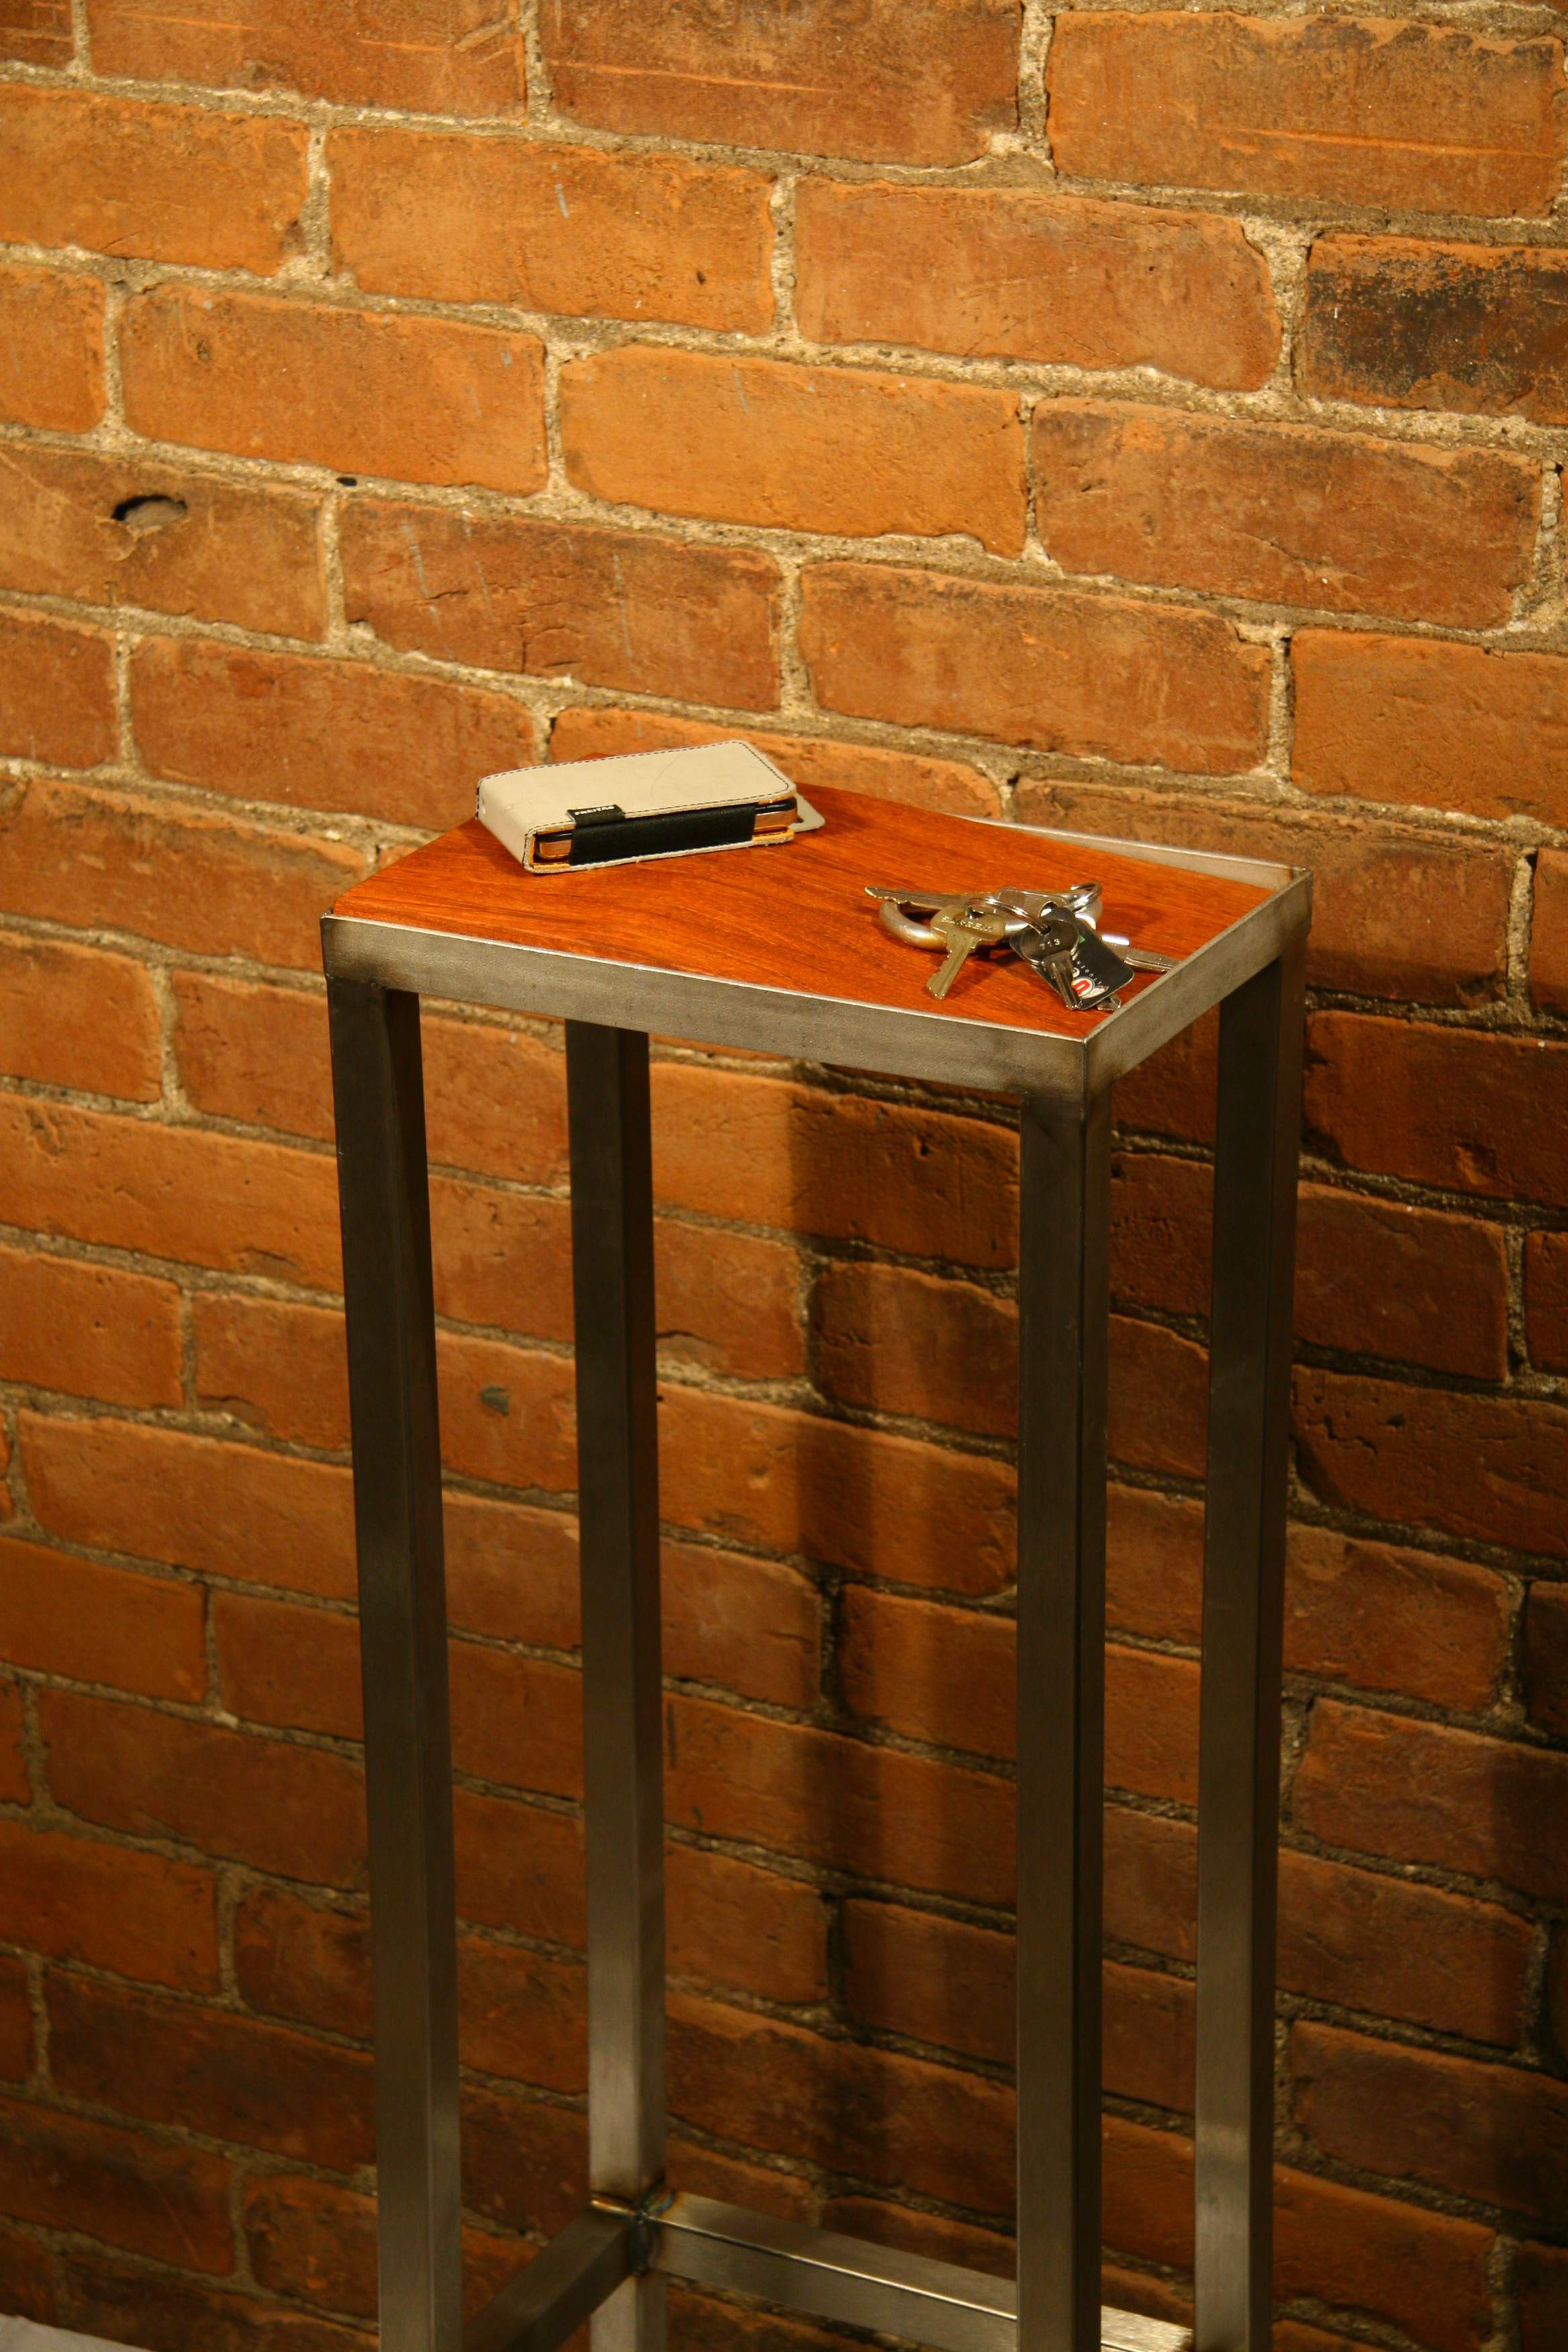 Side table with keys that helps with saving kitchen counter space